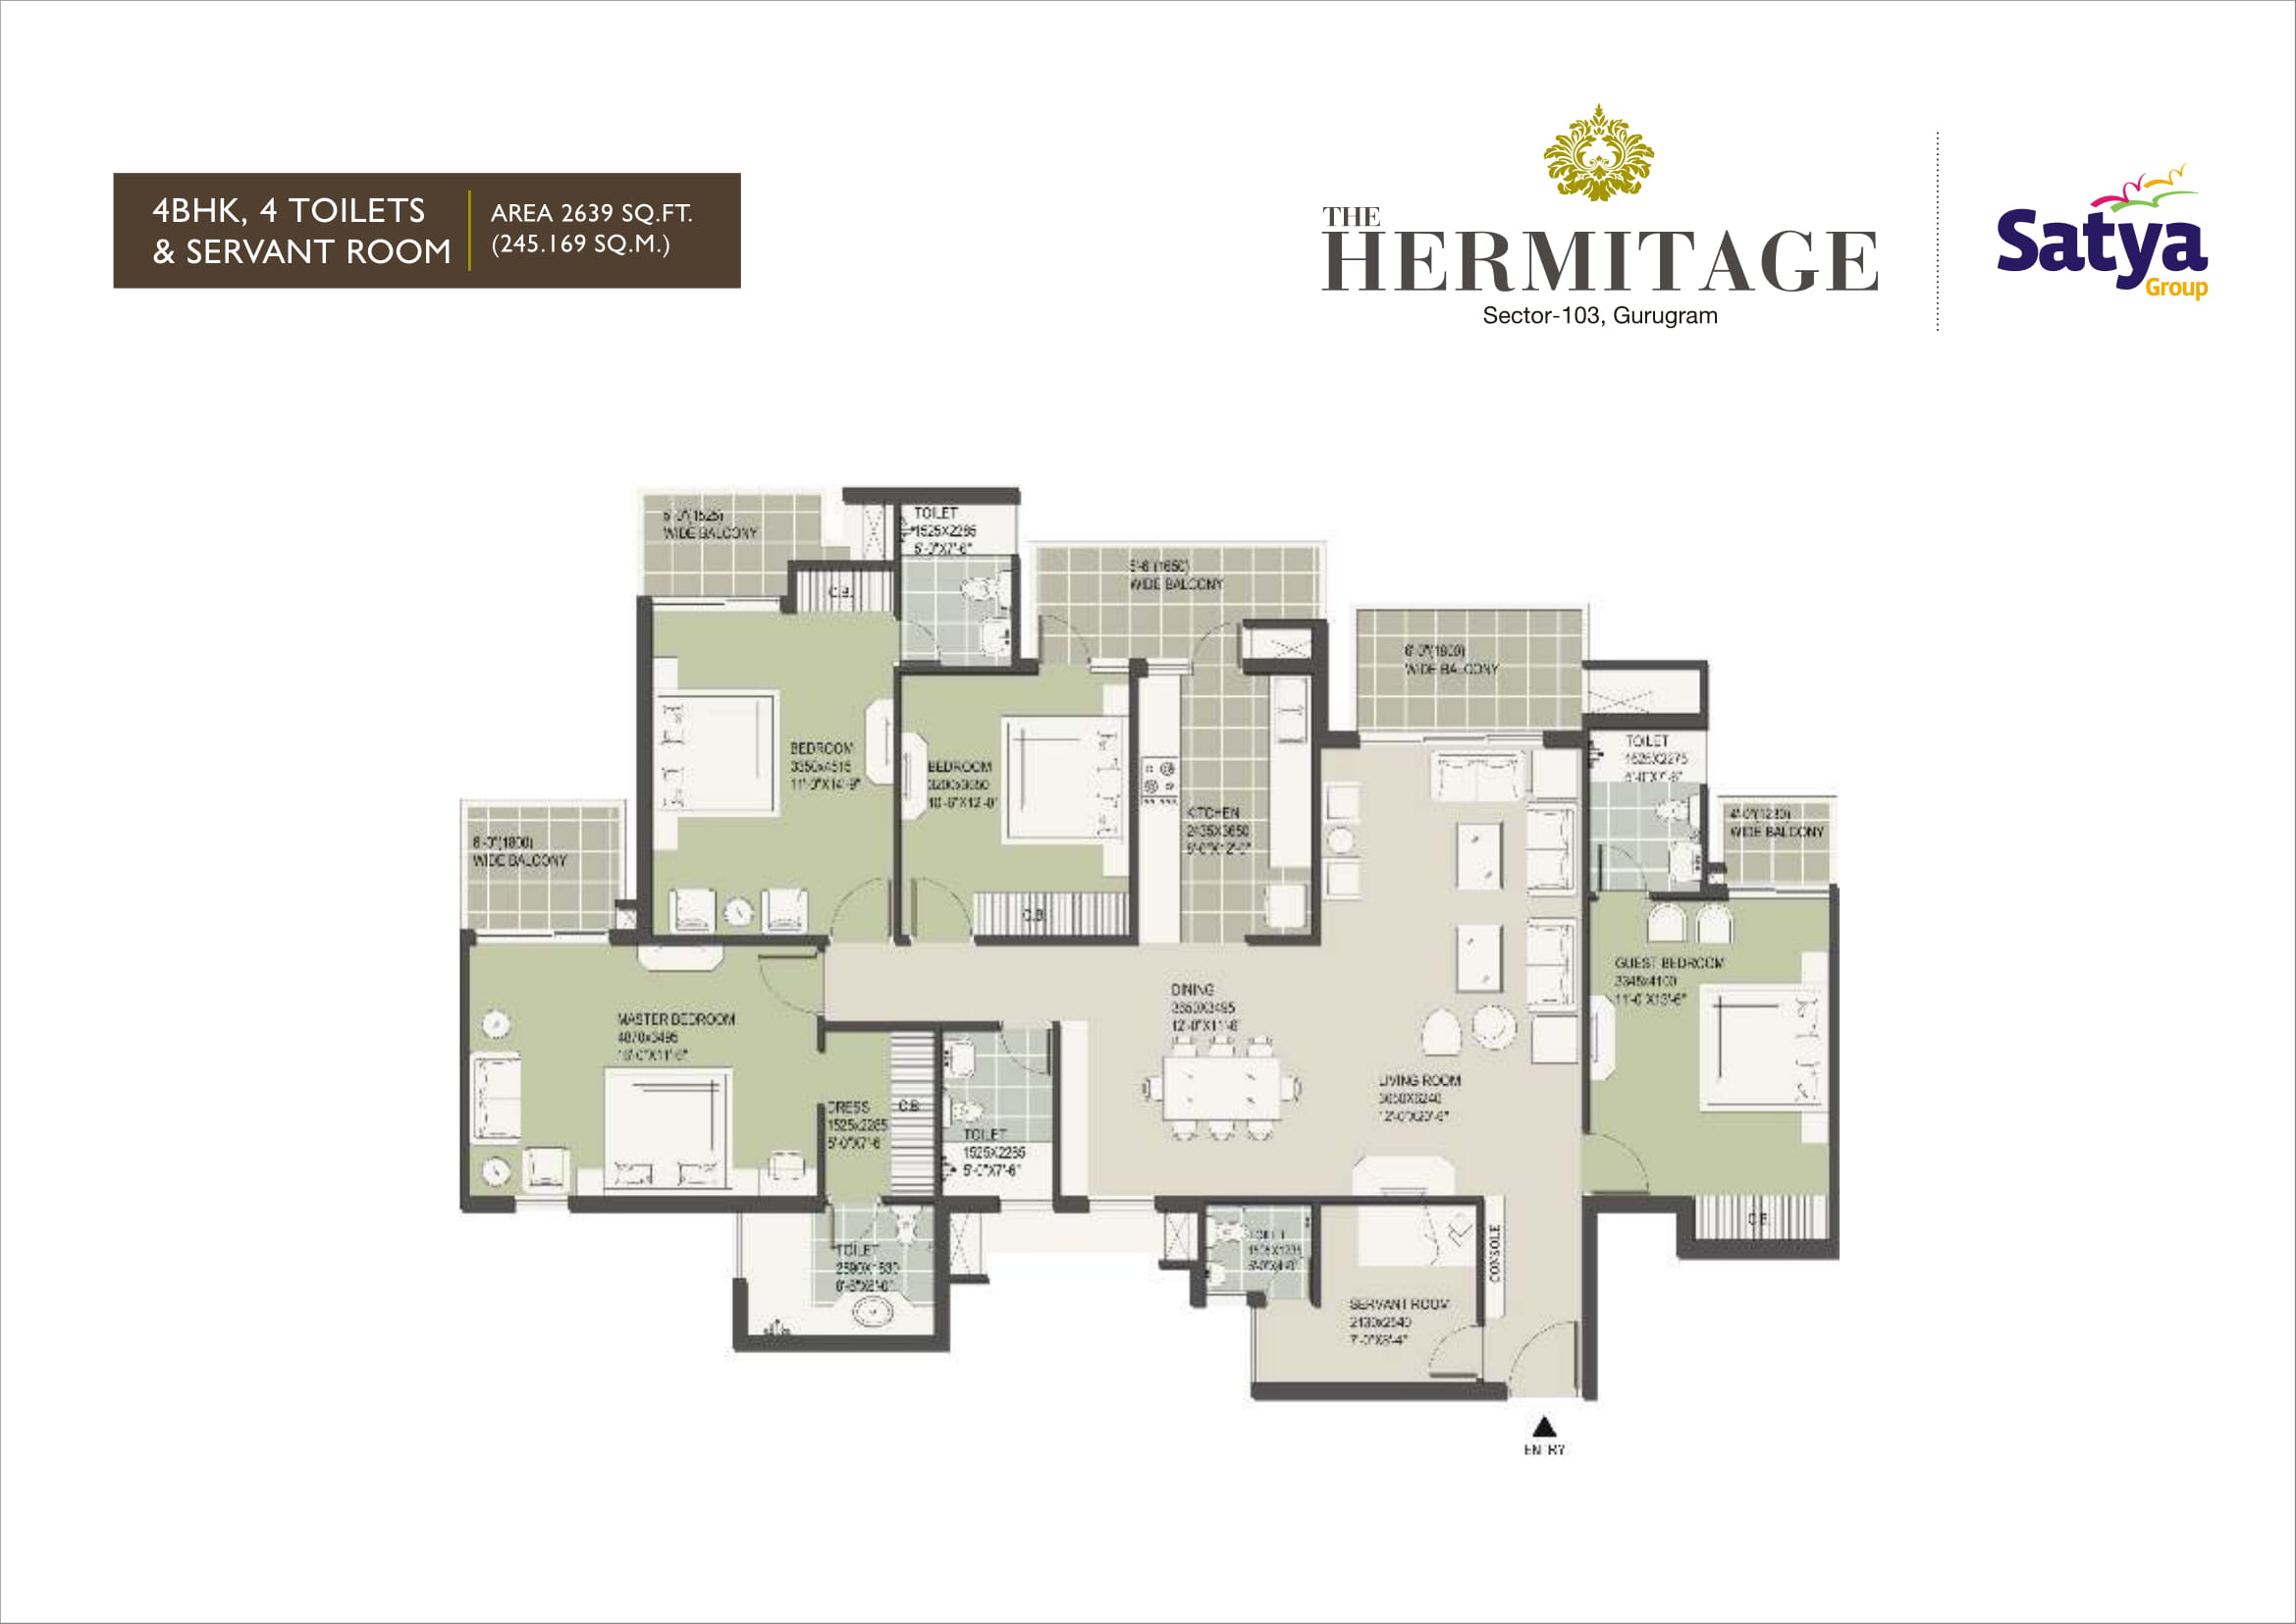 4BHK Layout Plan